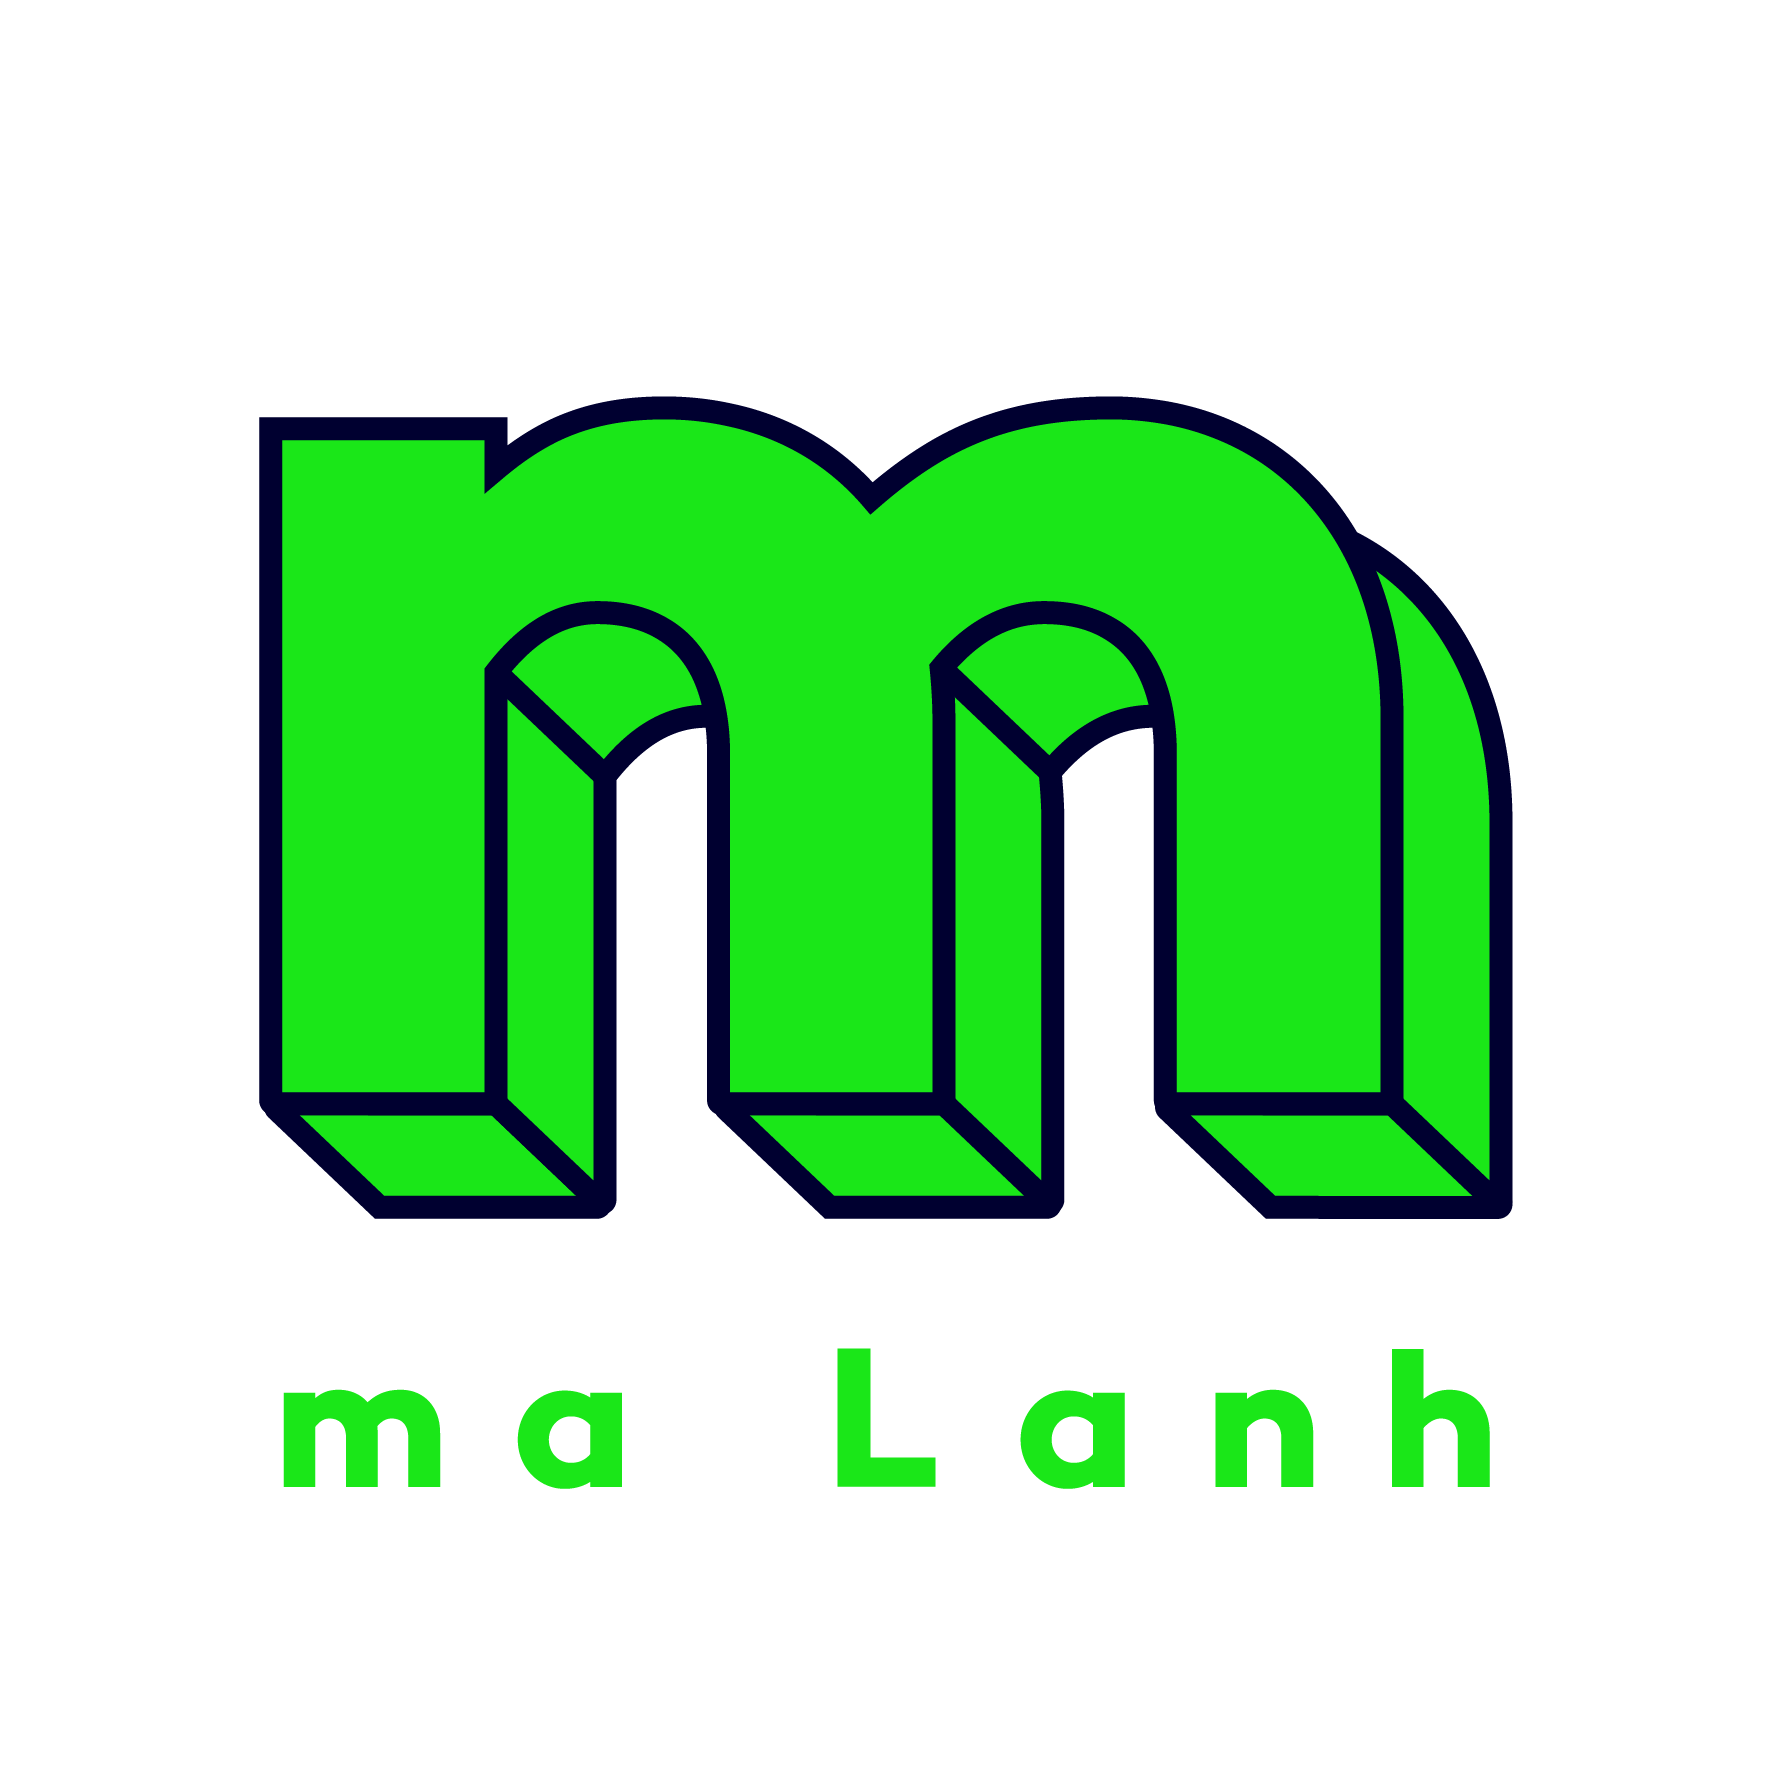 malanh - journal blog